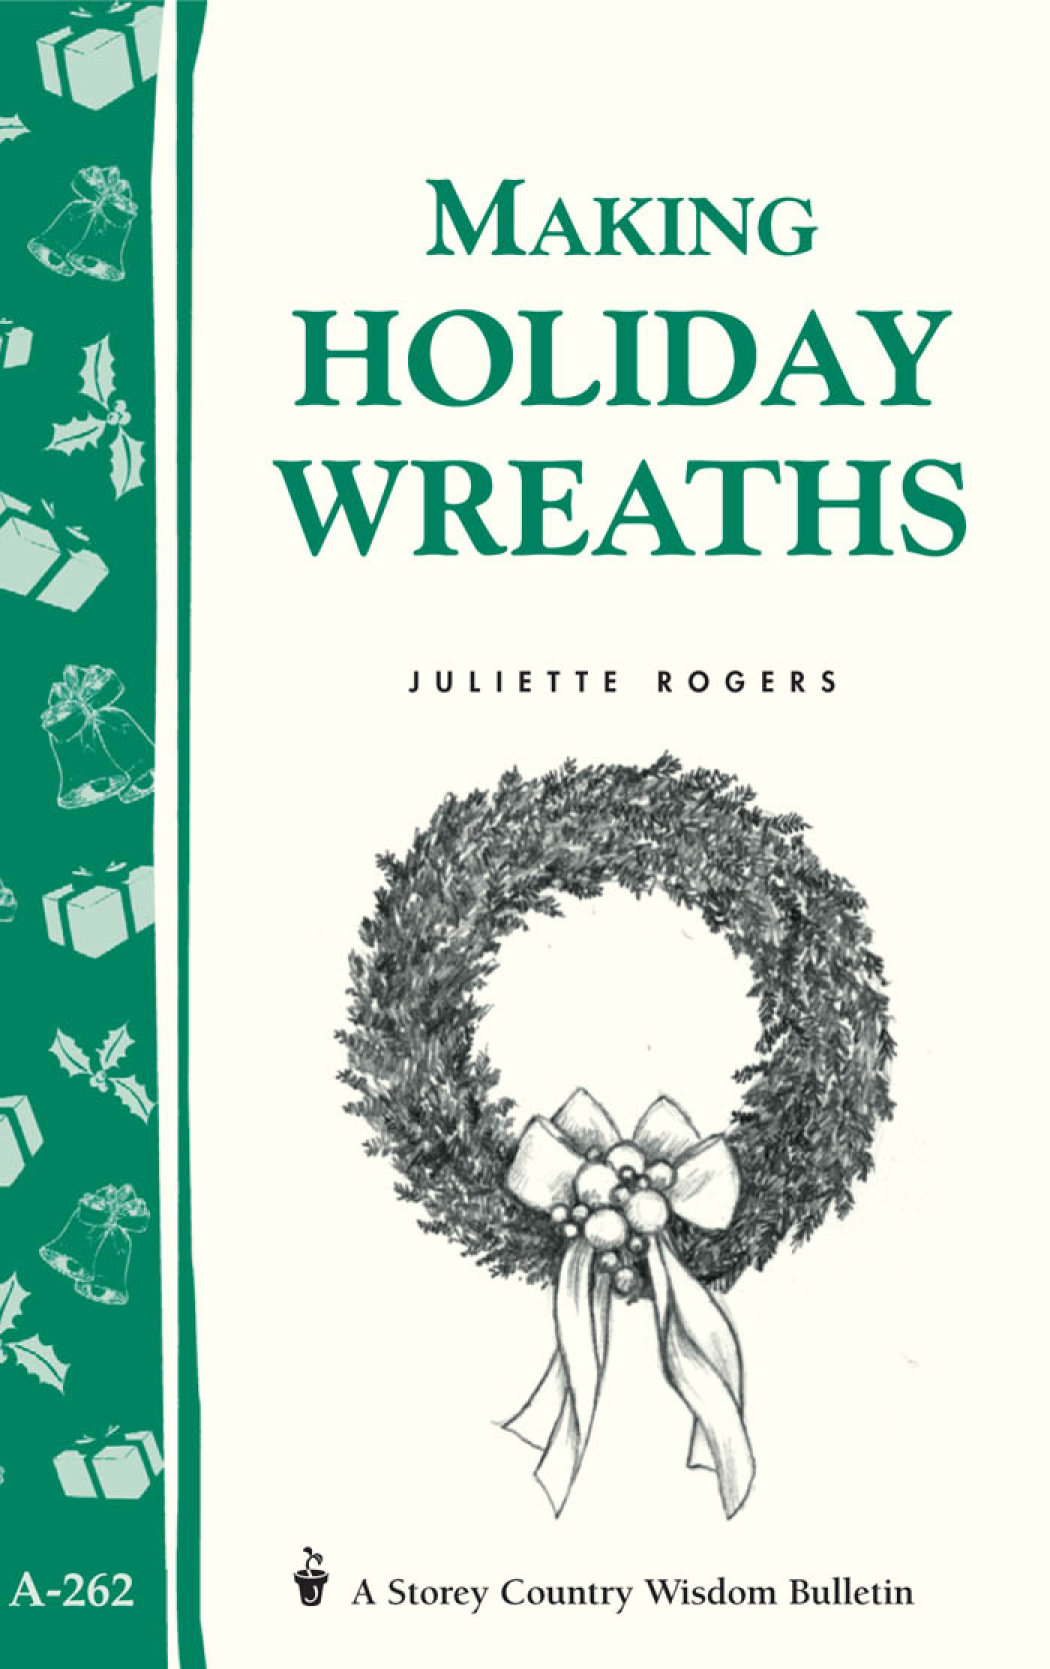 Making Holiday Wreaths Storey's Country Wisdom Bulletin A-262 - Juliette Rogers